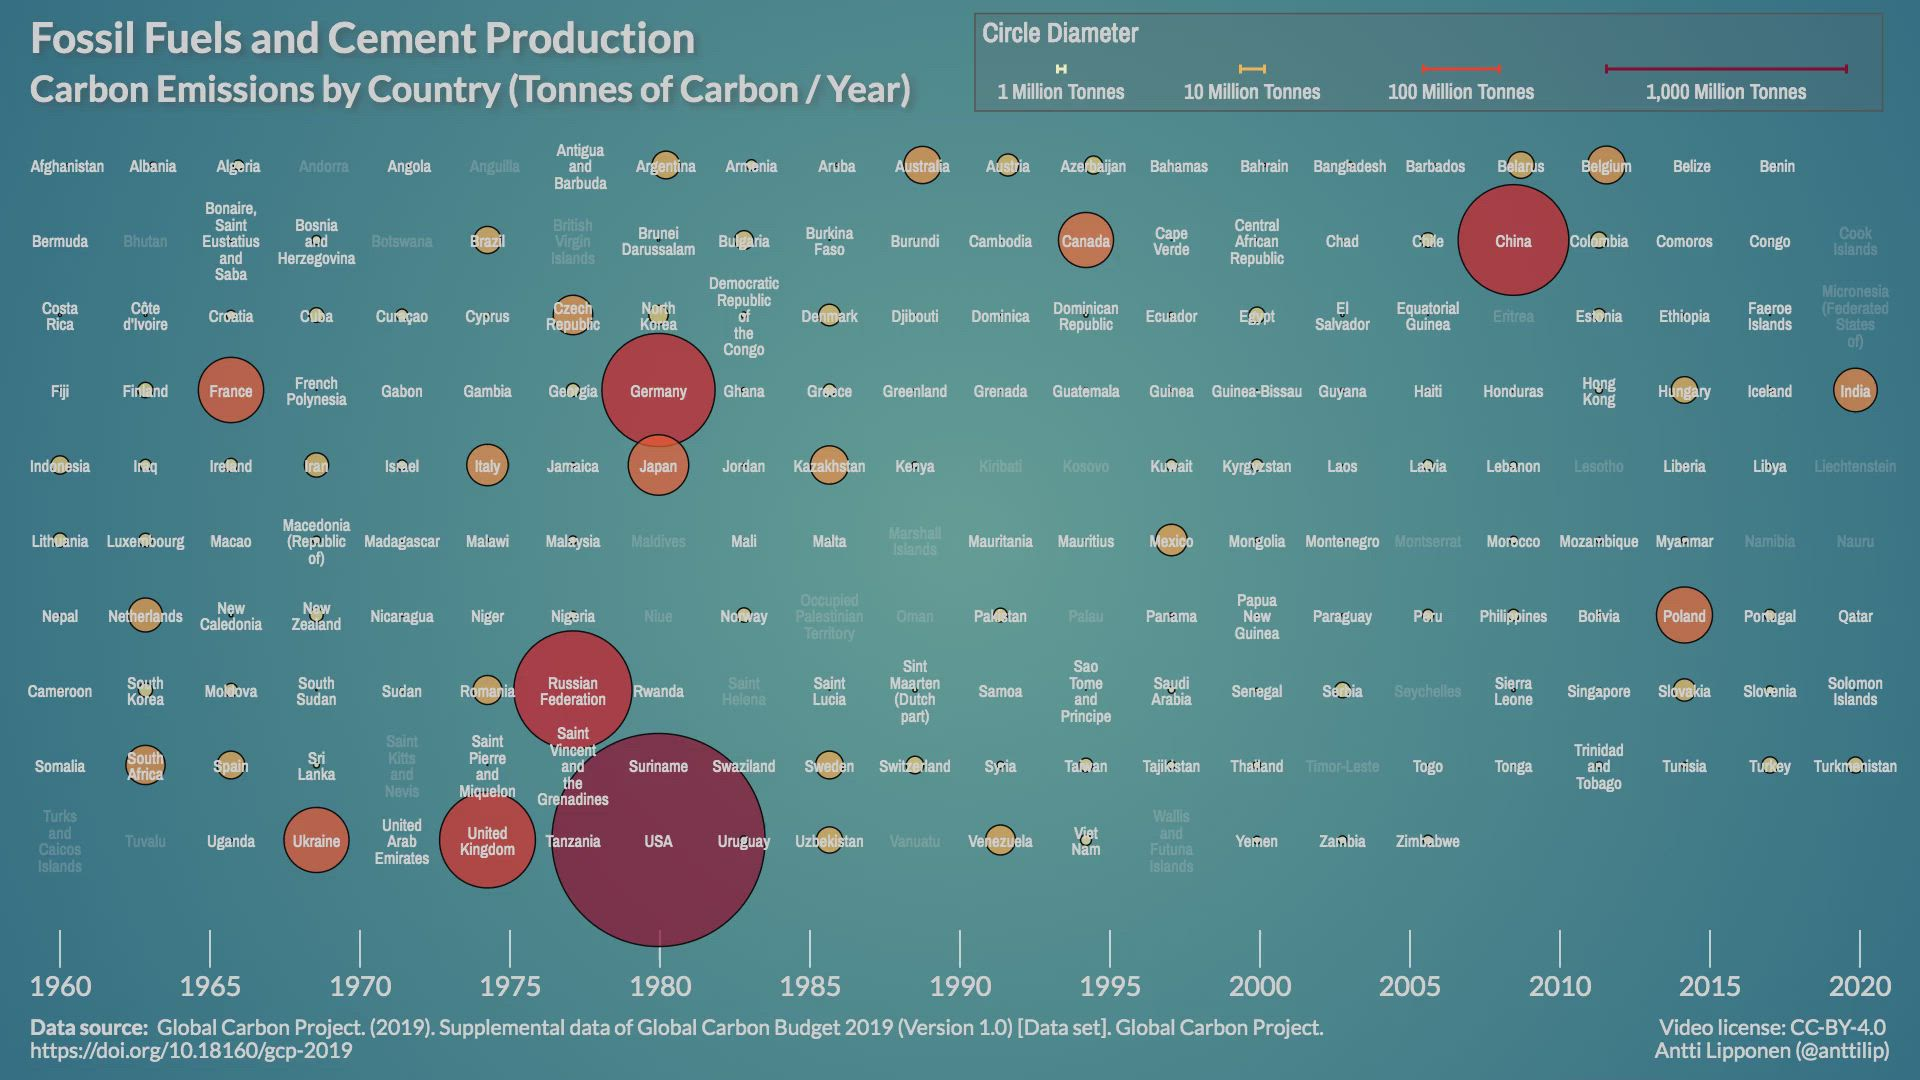 Fossil Fuels and Cement Production